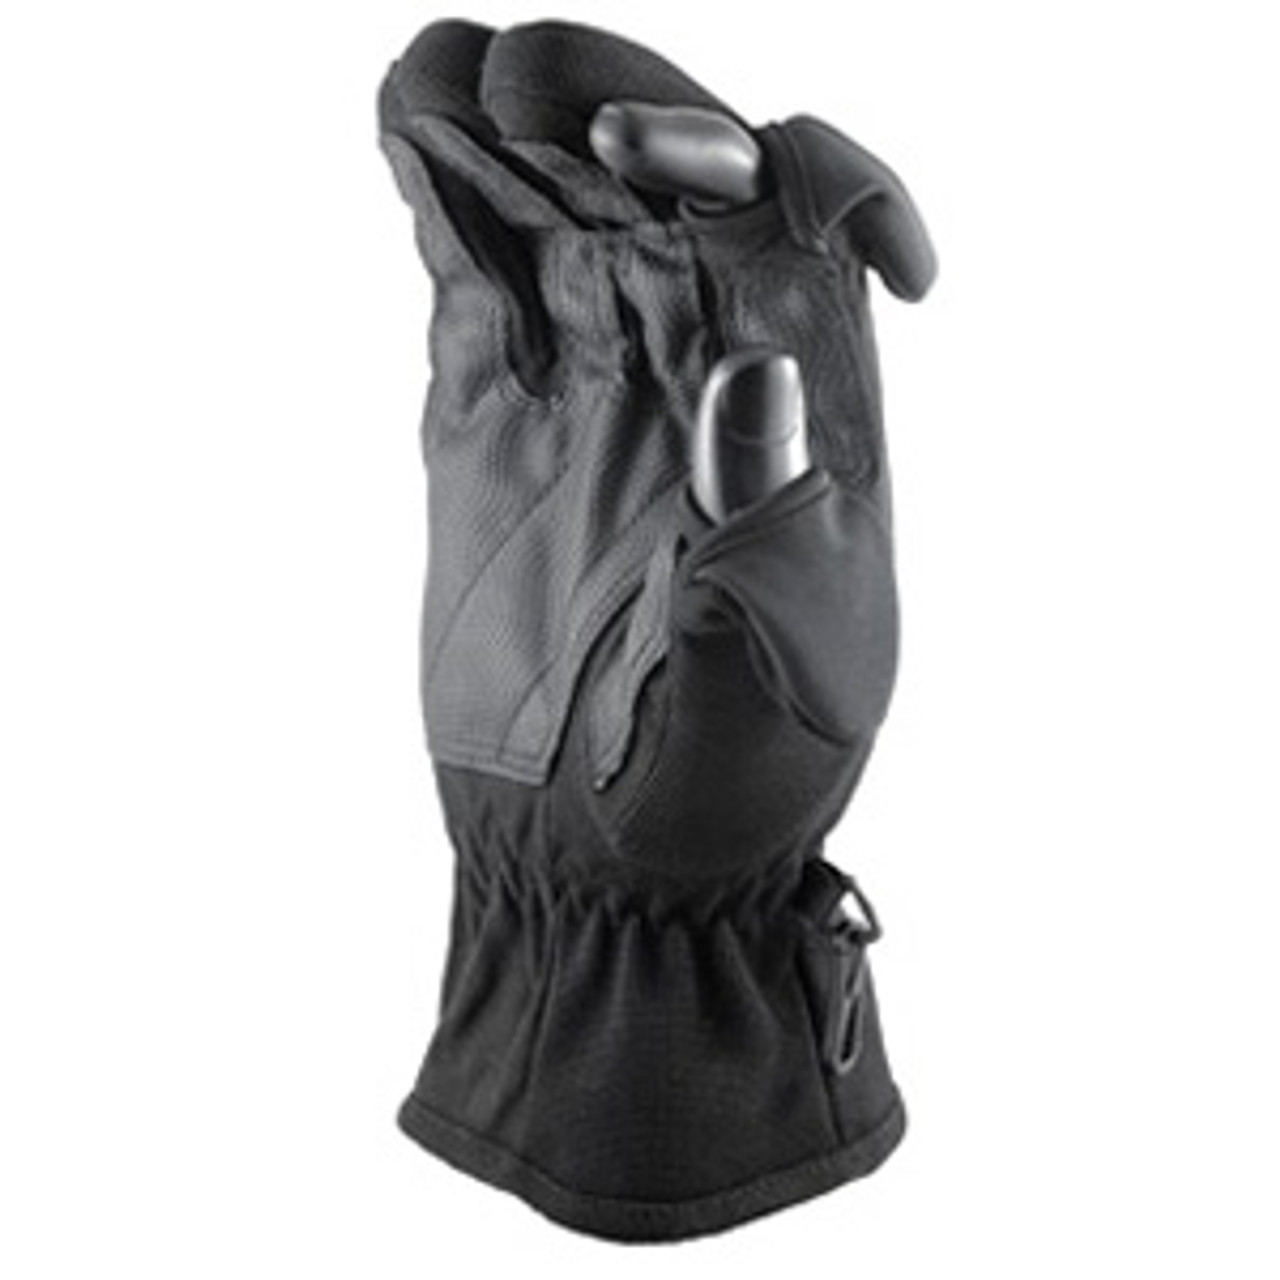 Optex Freehands Photo Gloves - Mens (X-Large)